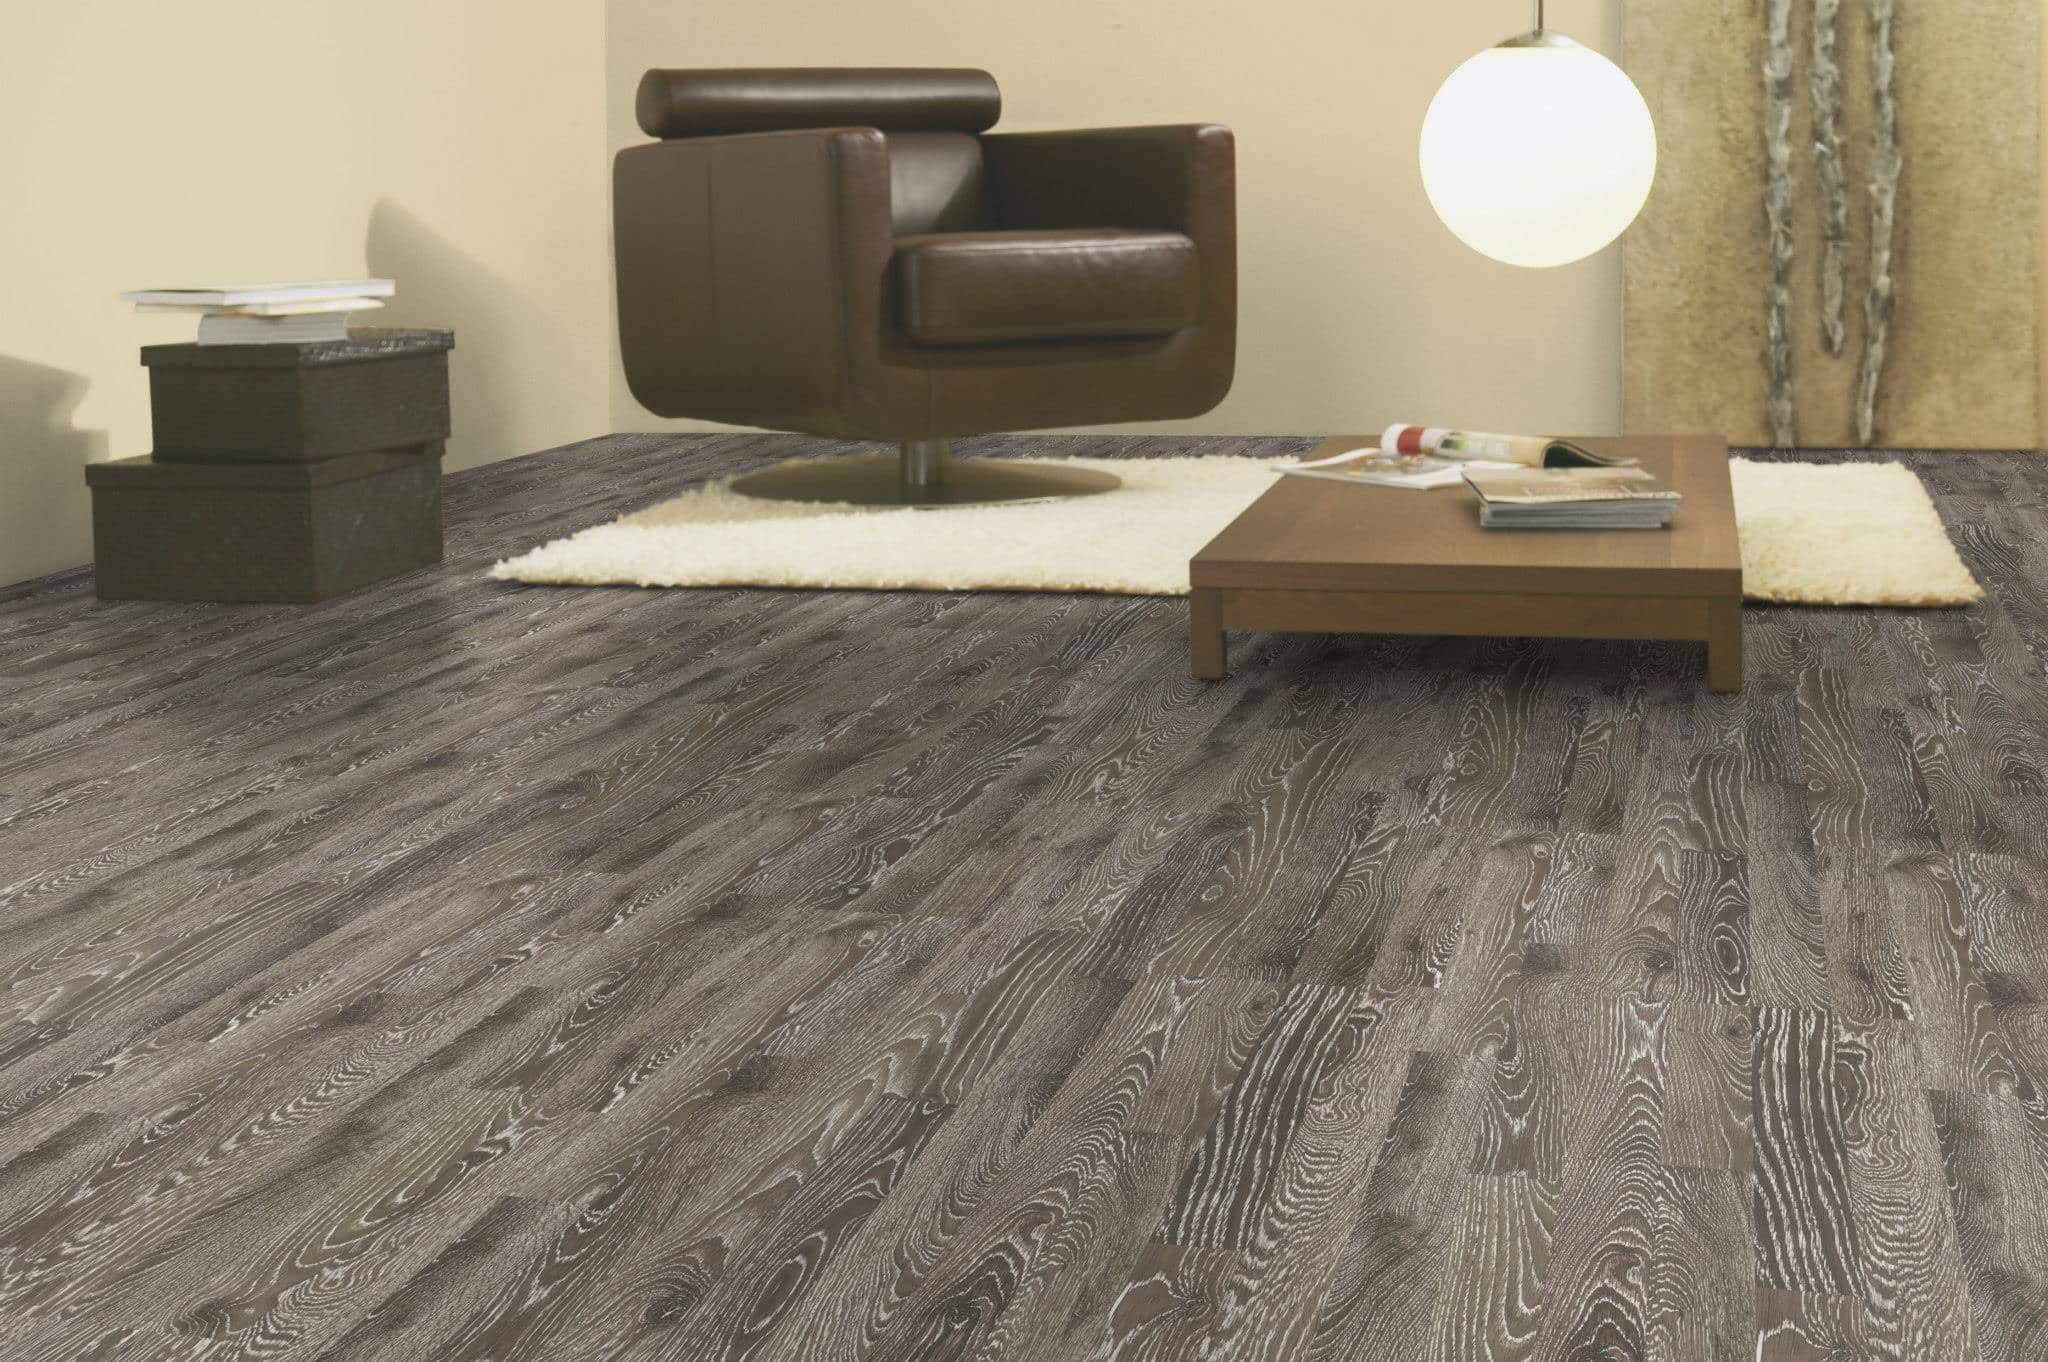 Euro flooring pvt ltd mysore road wall paper dealers in euro flooring pvt ltd mysore road wall paper dealers in bangalore justdial dailygadgetfo Choice Image